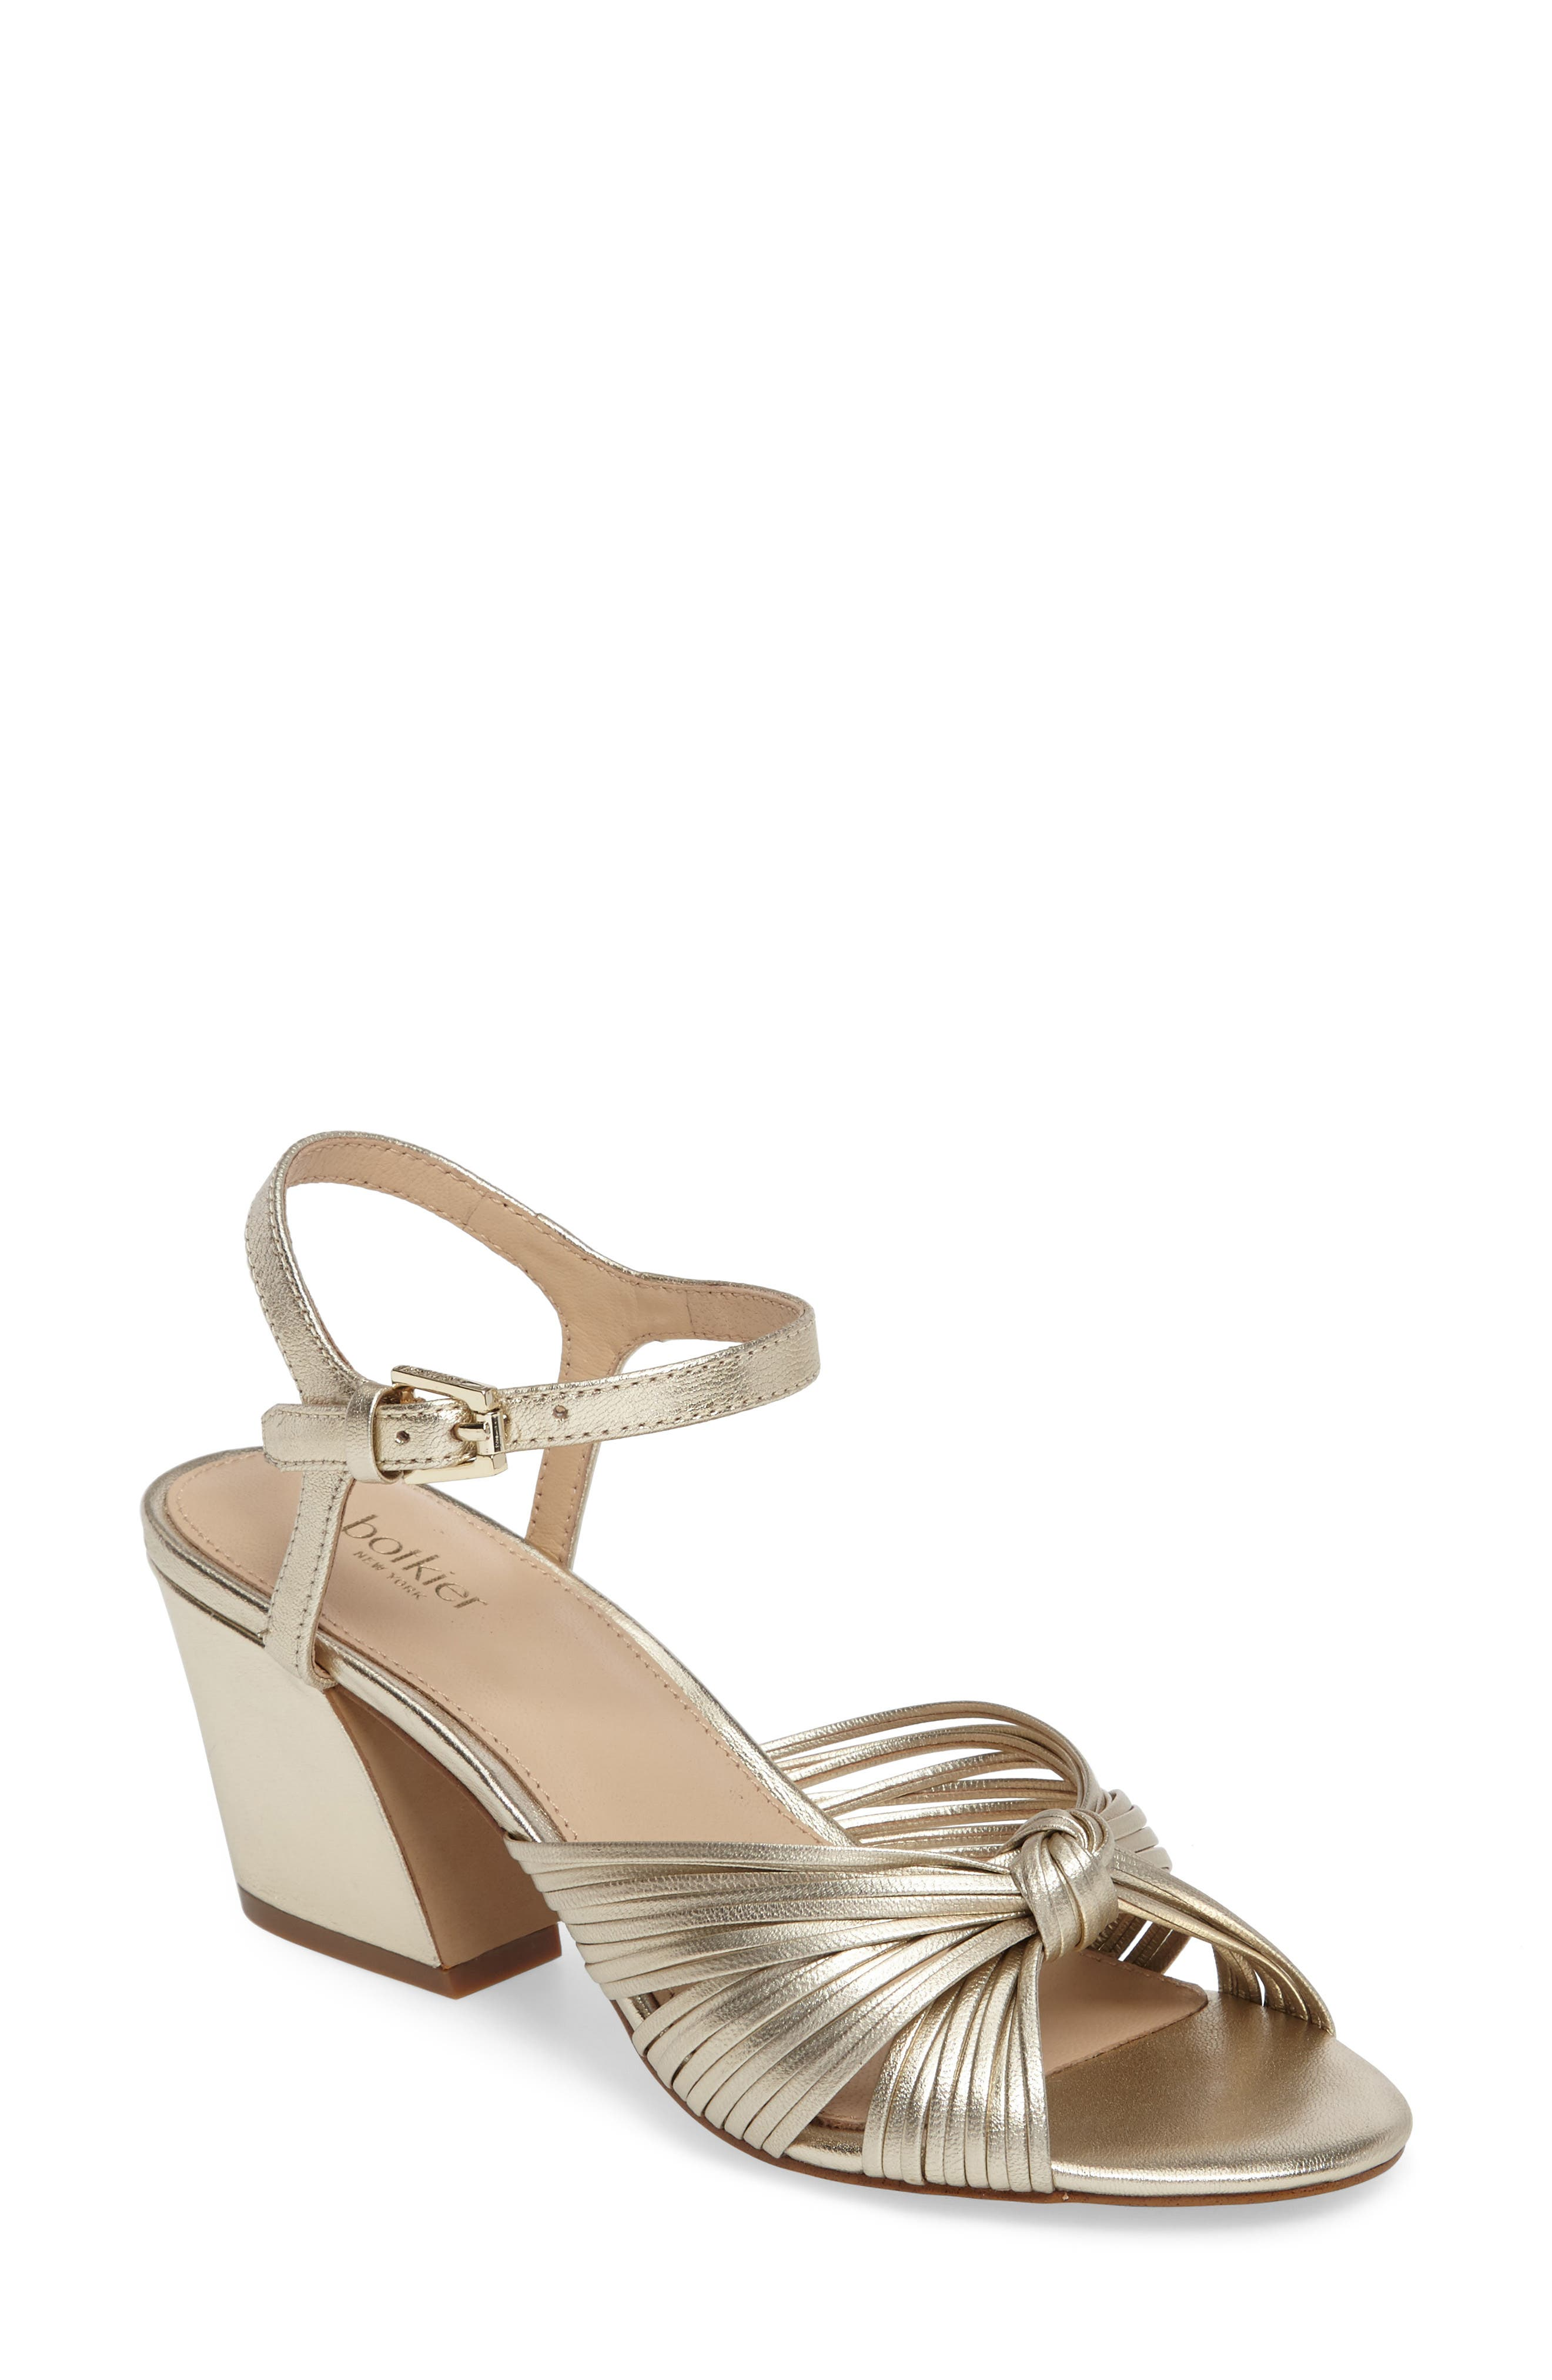 Patsy Block Heel Sandal,                             Main thumbnail 1, color,                             100